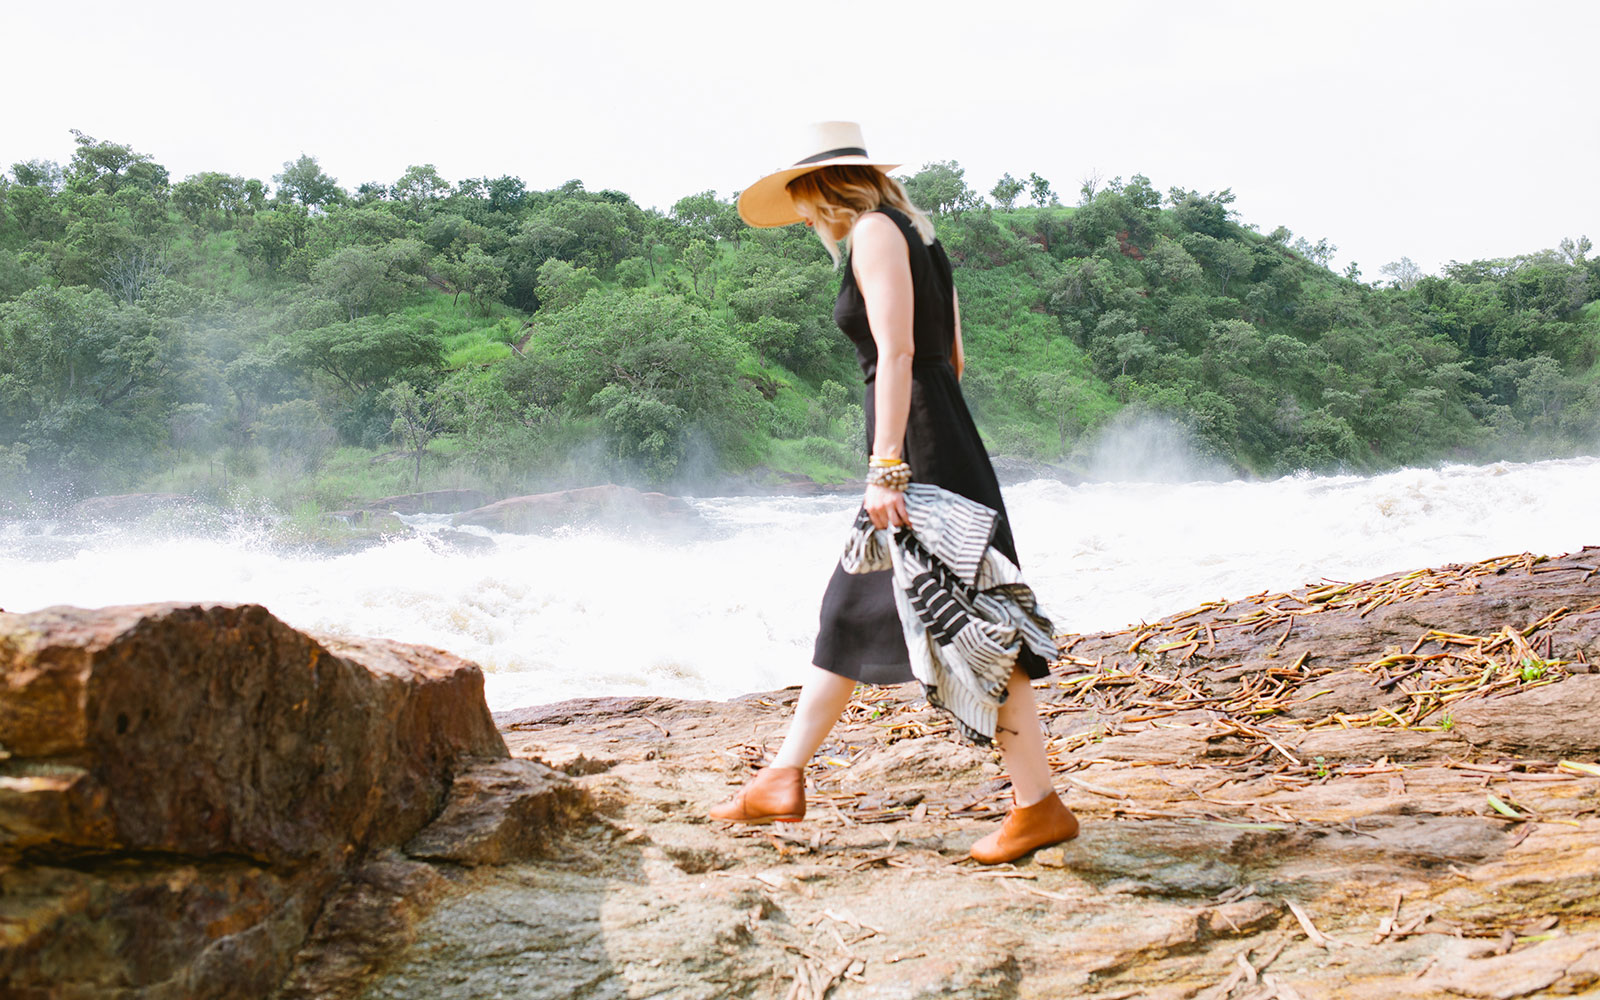 In Photos: Actress Sophia Bush's Trip to Uganda